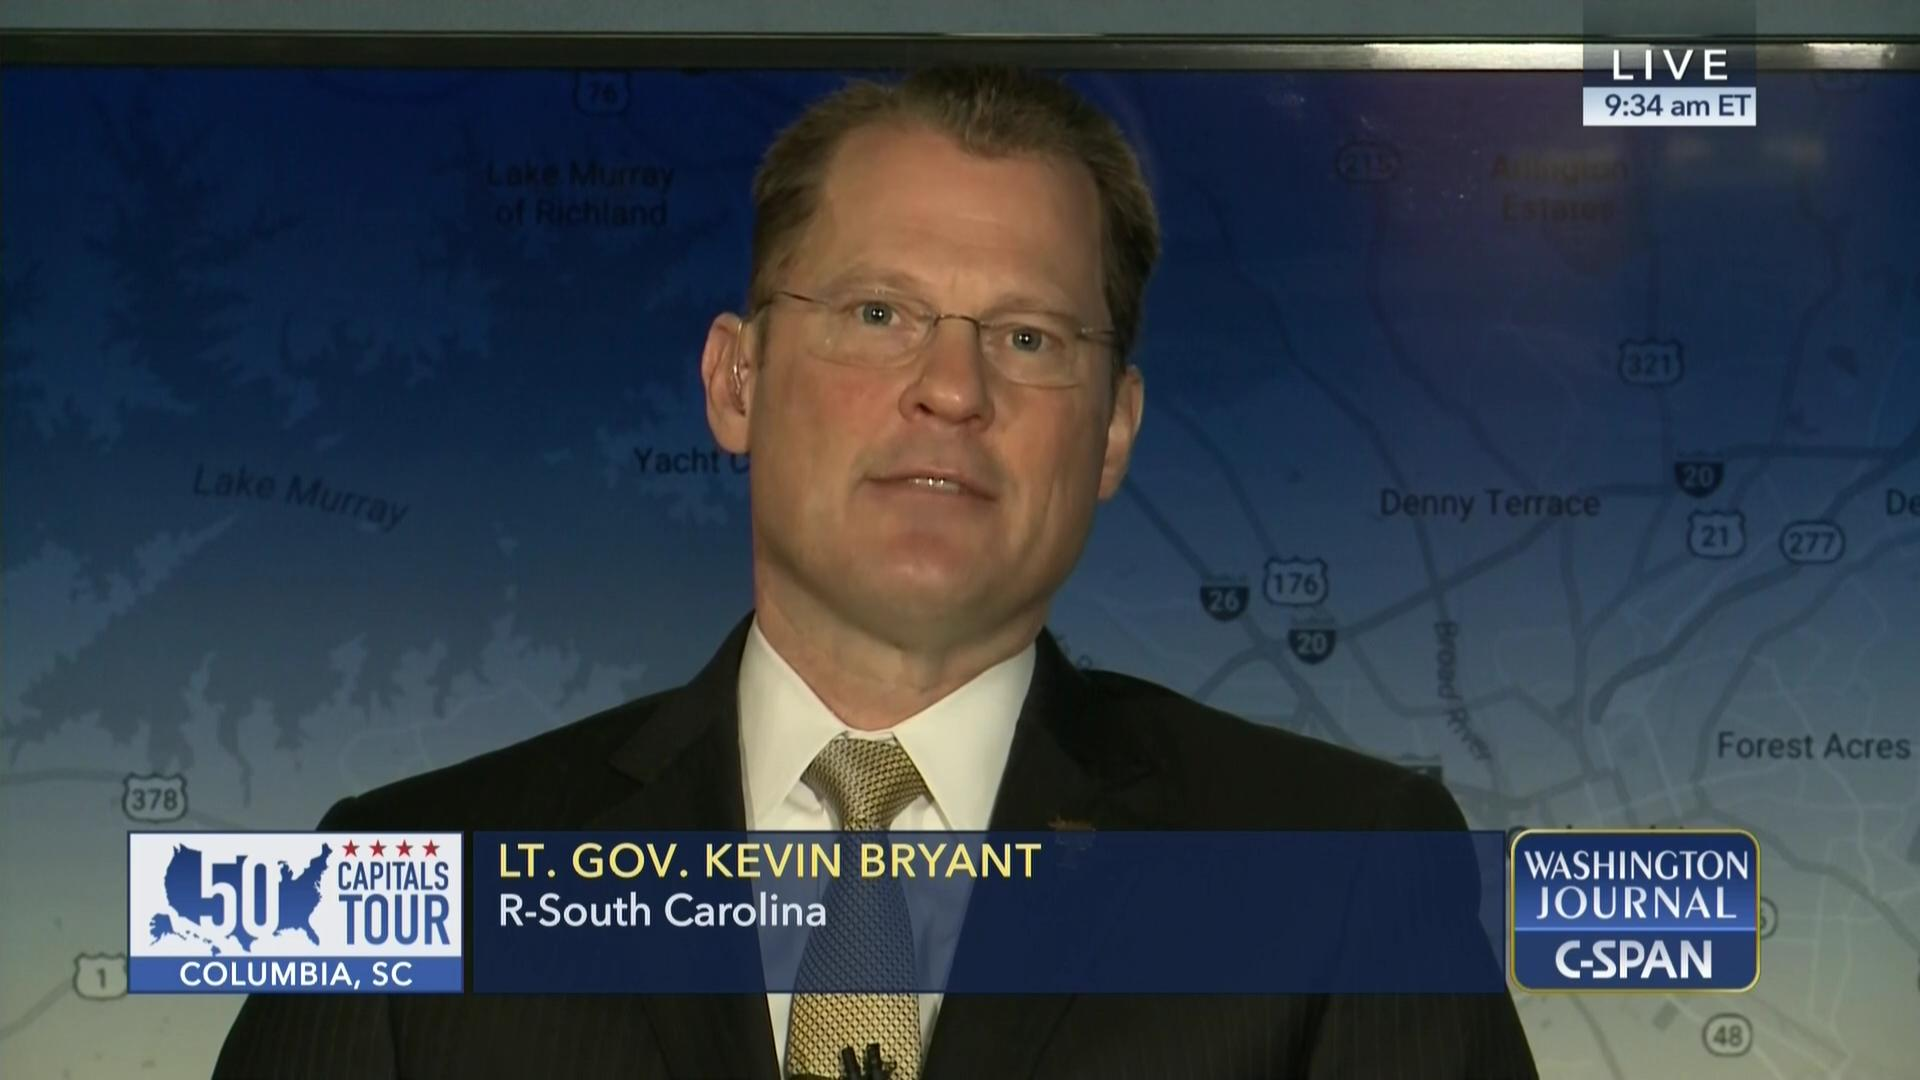 Lieutenant Governor Kevin Bryant on Key Issues in South Carolina 1920x1080